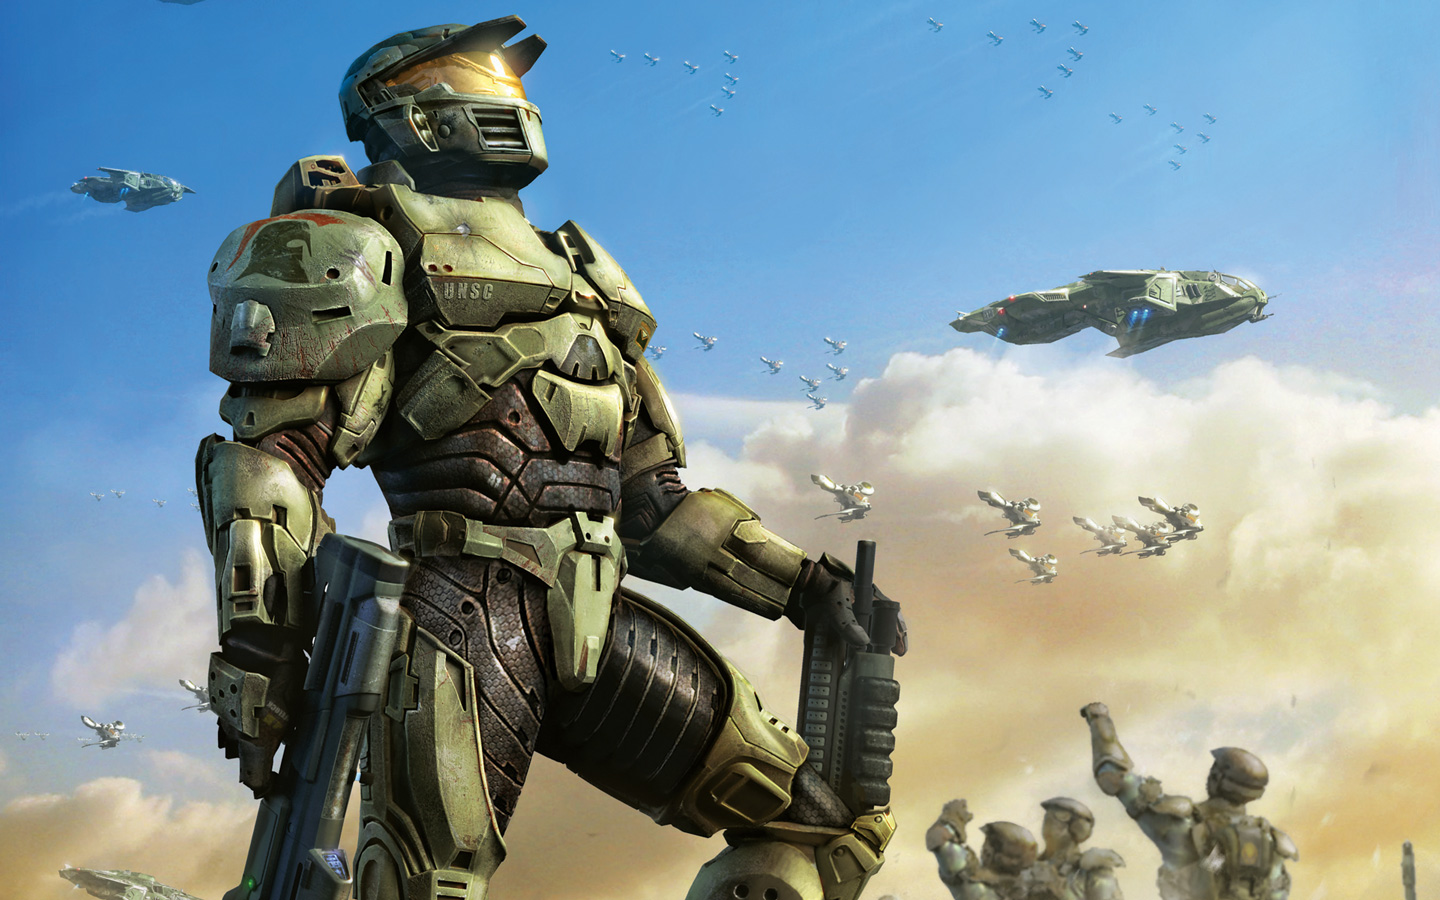 Halo Wars Wallpaper in 1440x900